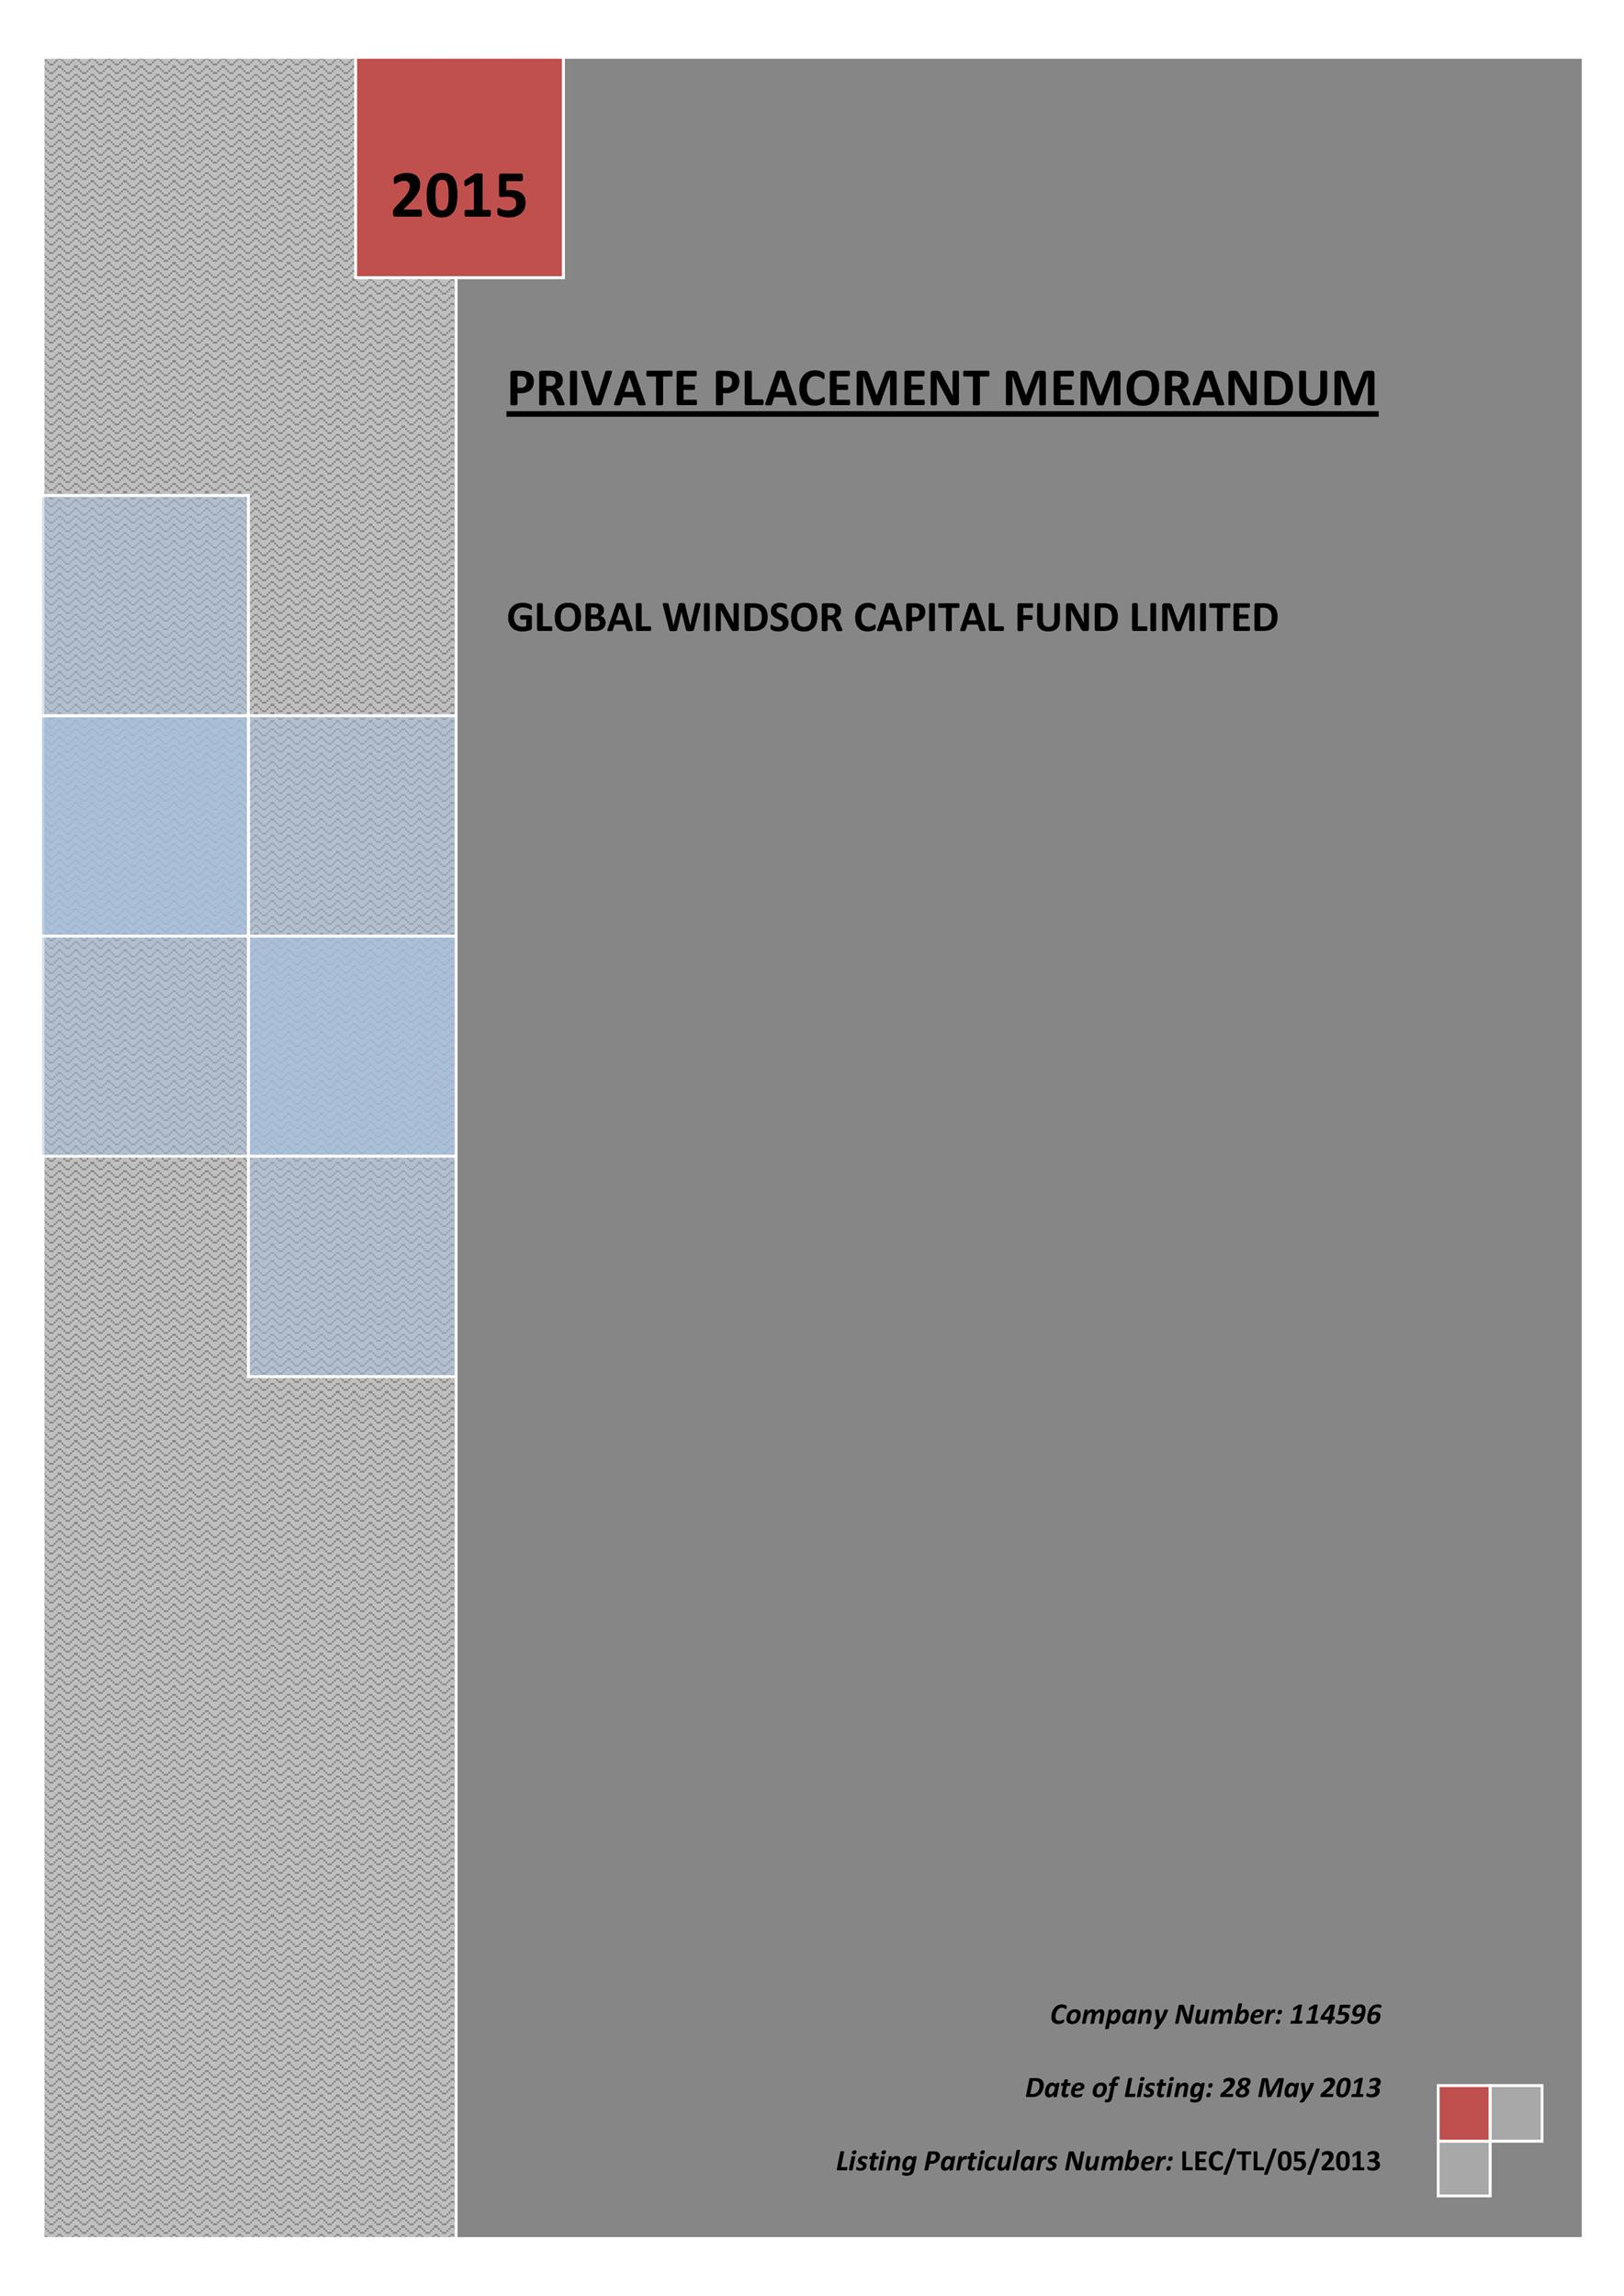 40 Private Placement Memorandum Templates [Word, PDF]